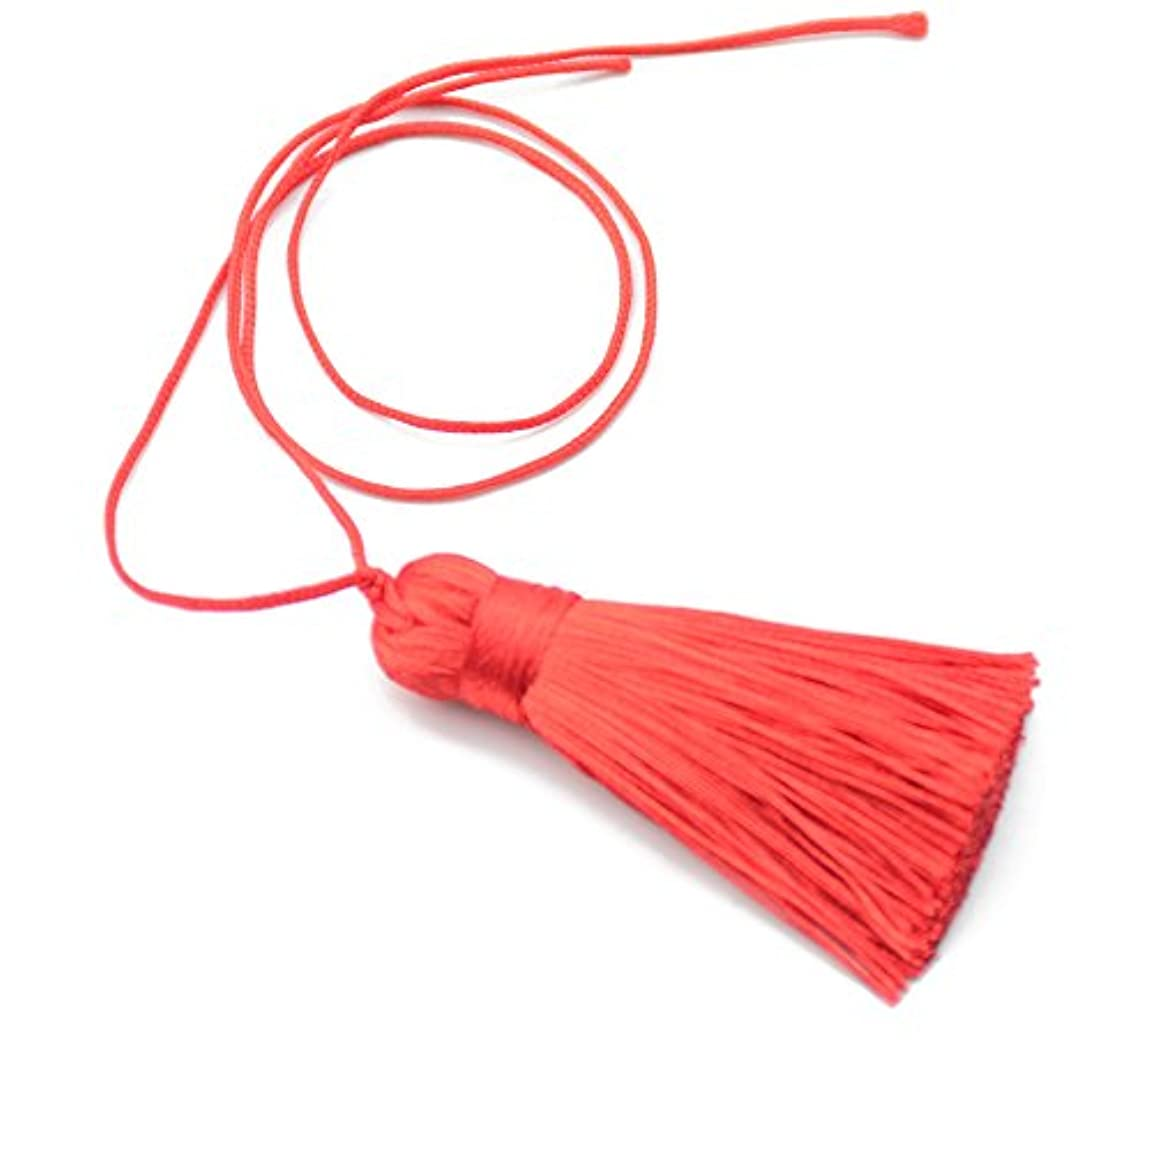 10pc 25cm/9.8 inch Cute Chunky Tassels Soft Elegant Handmade Silky Floss Tassels with 2.75 Inch Cord Loop and Chinese Knot for Woman Earrings, Jewelry Making, Souvenir (Red) waivwh751